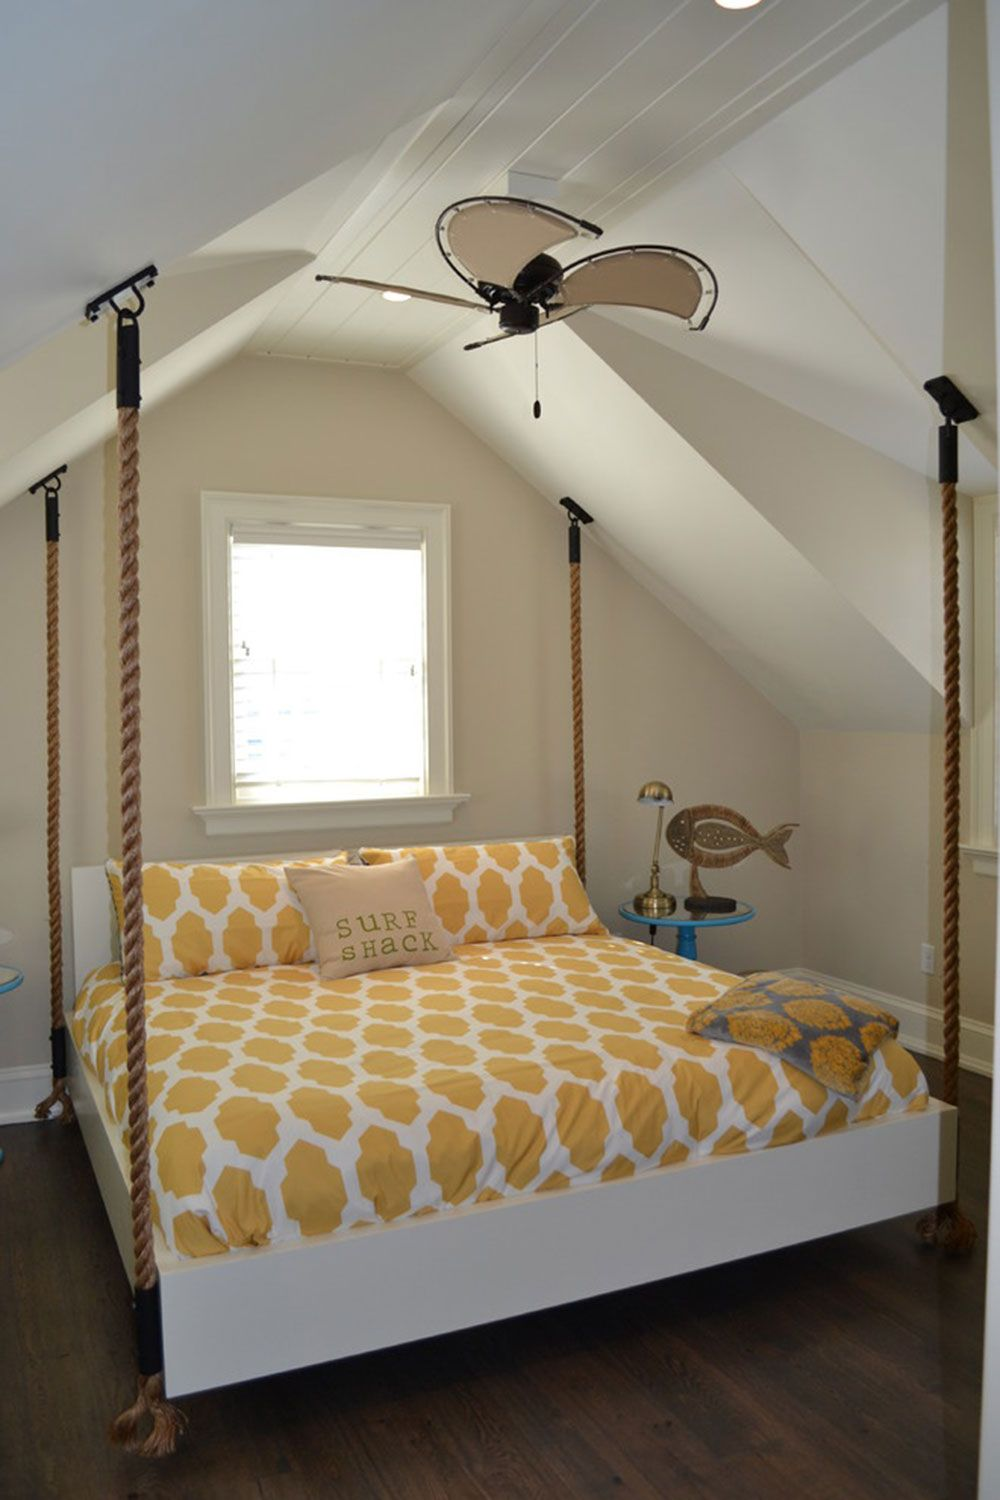 Creative Hanging Beds Ideas For Amazing Homes Bed design